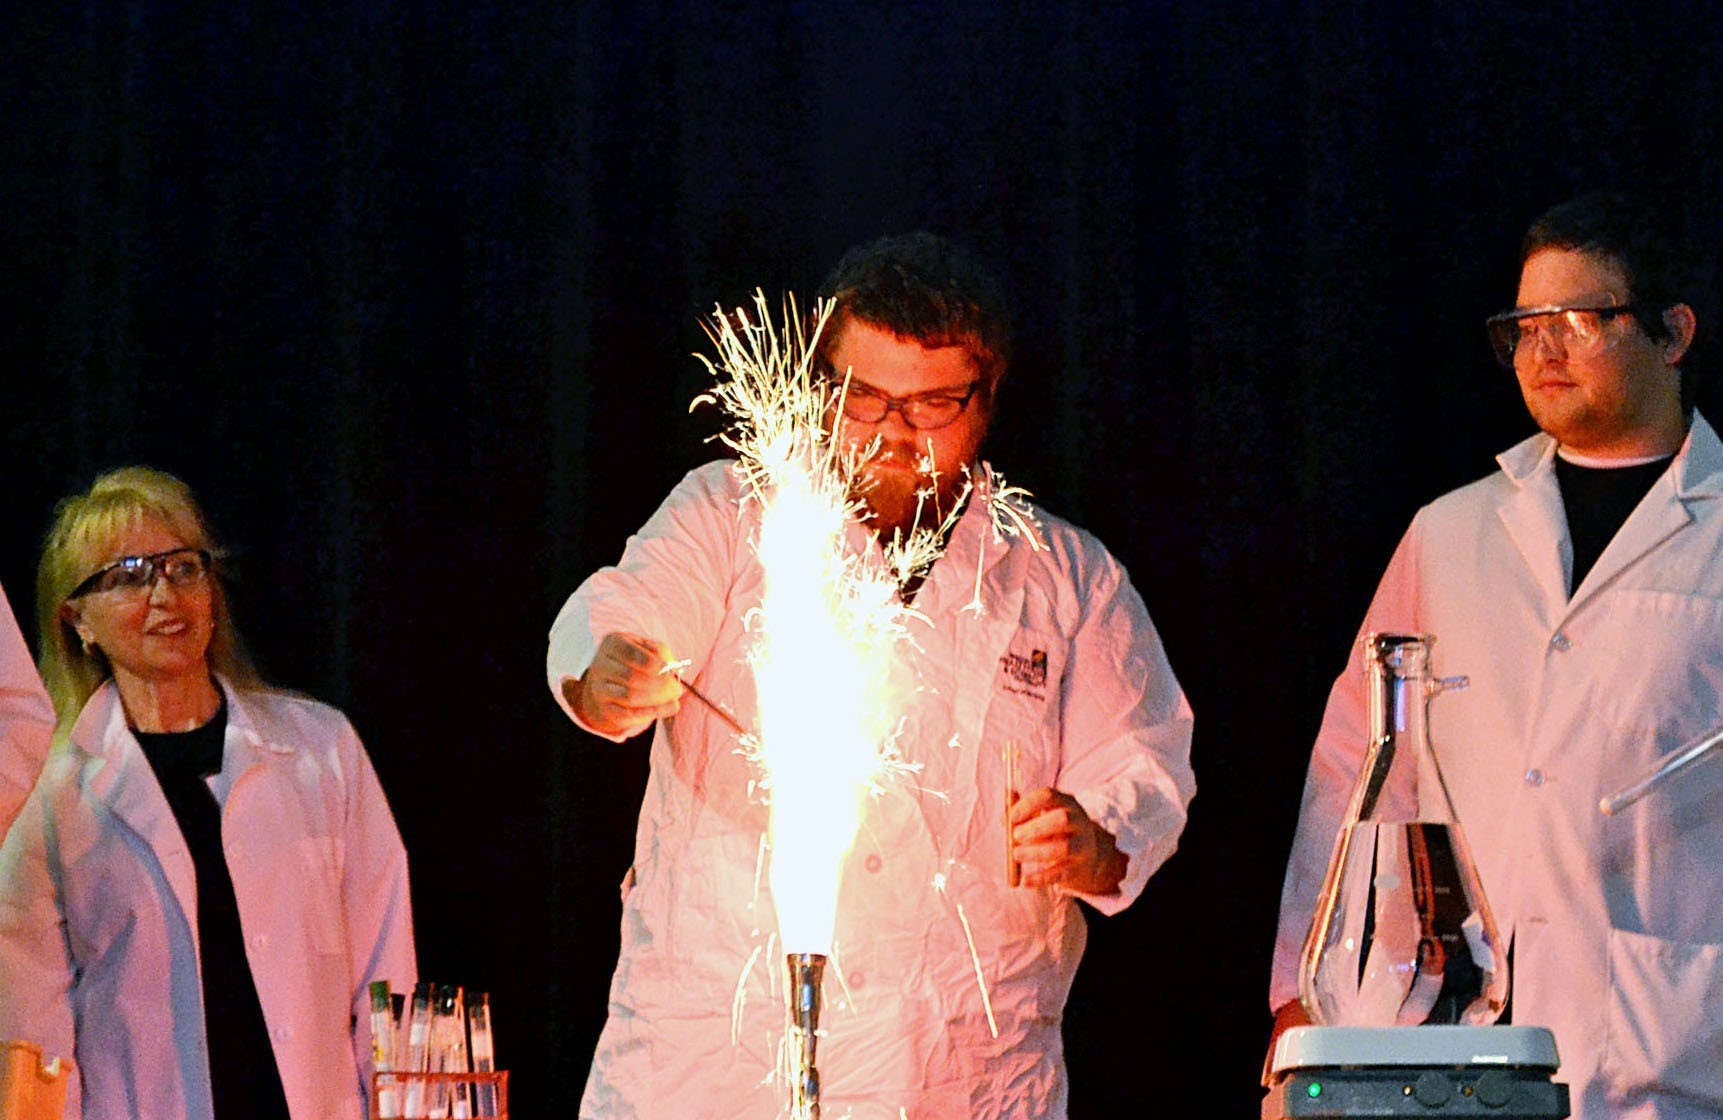 Chemistry Students participate in a Chem Club Demonstration at EOU